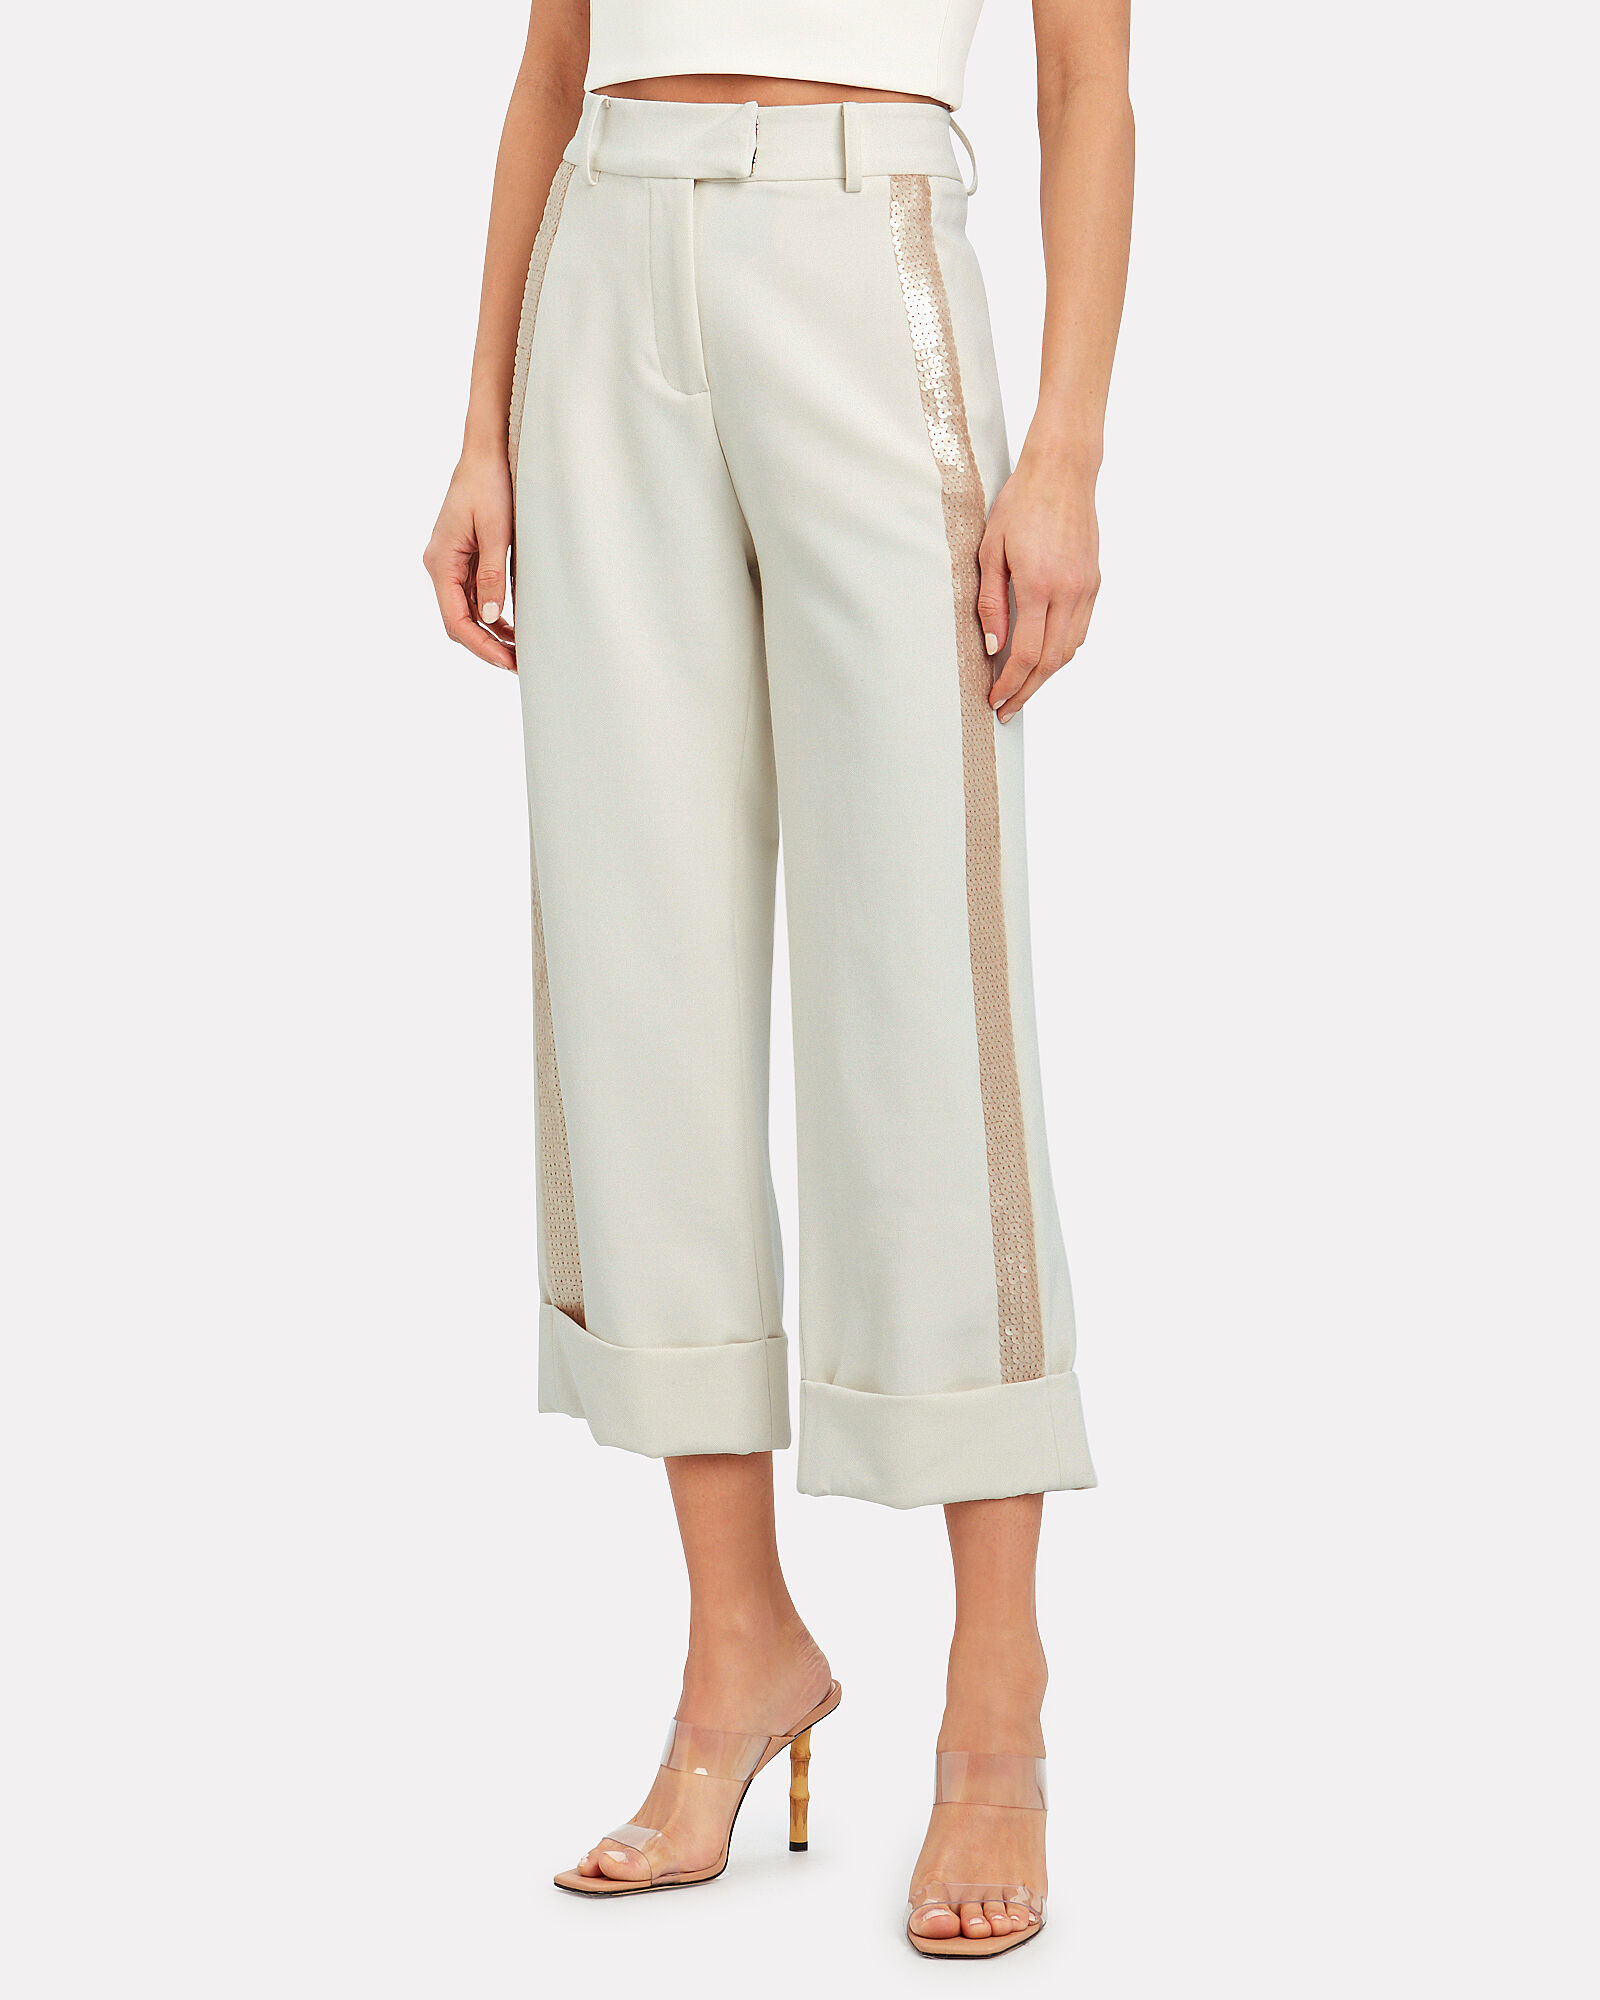 Gabina Cropped Sequin Trousers, IVORY, hi-res